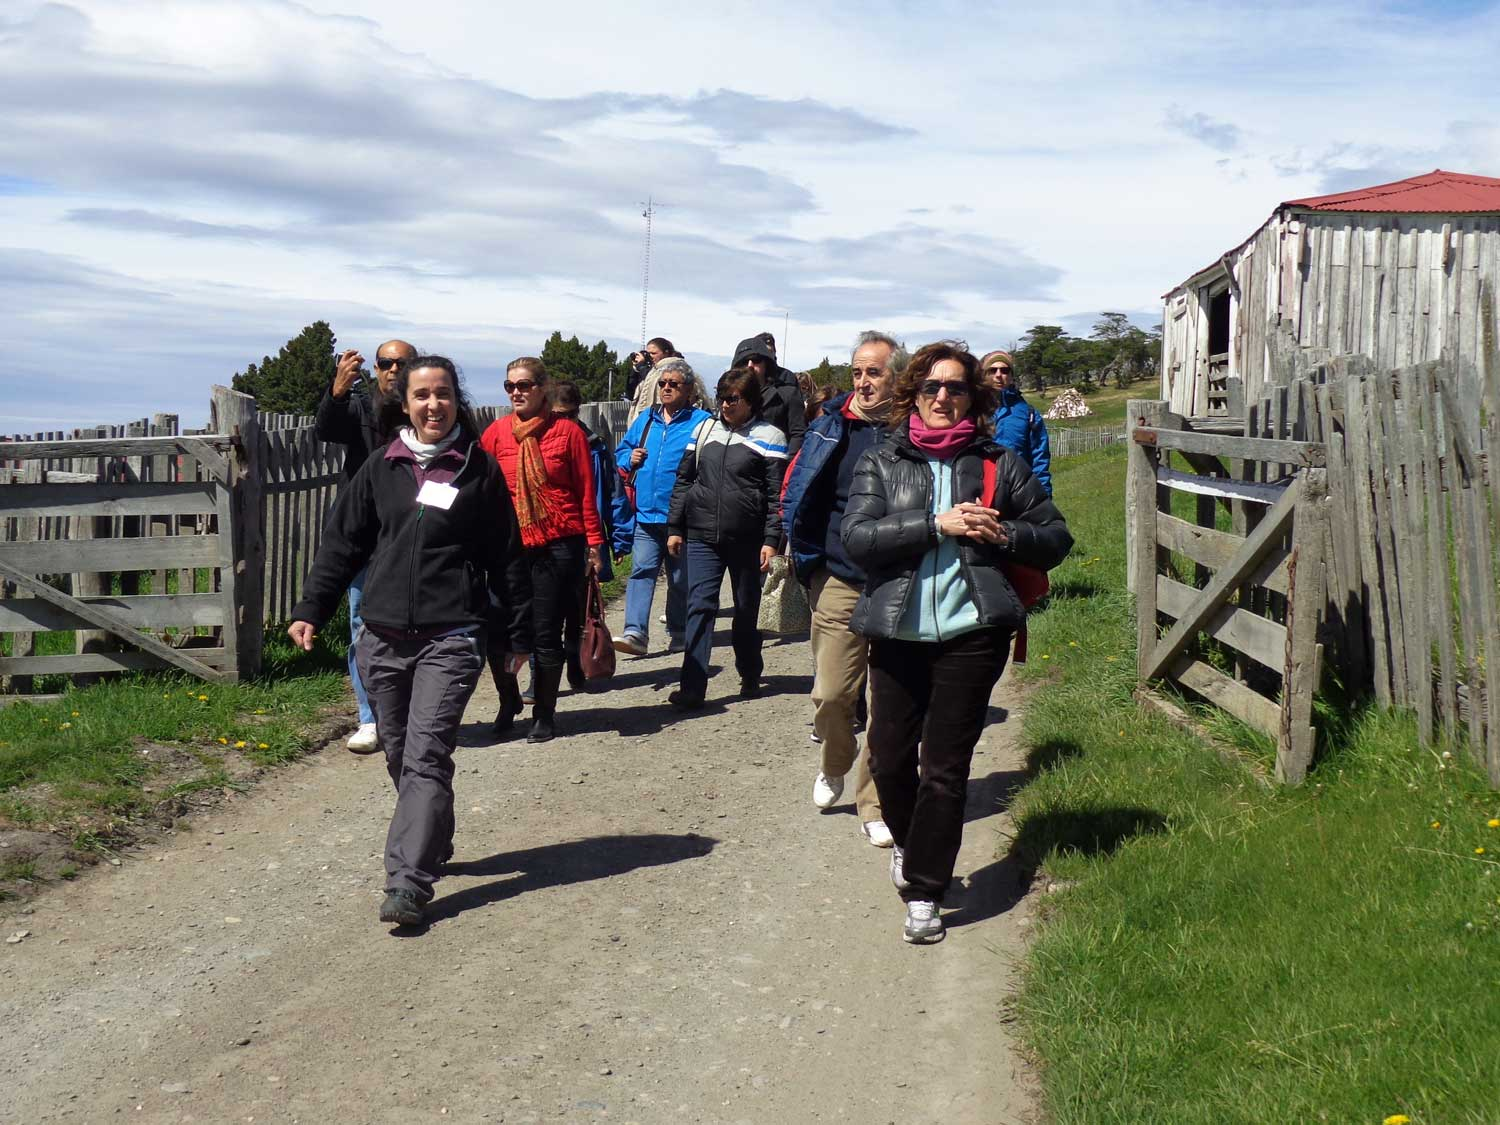 Group of people following their tour guide during one of the activities at Estancia Harberton.